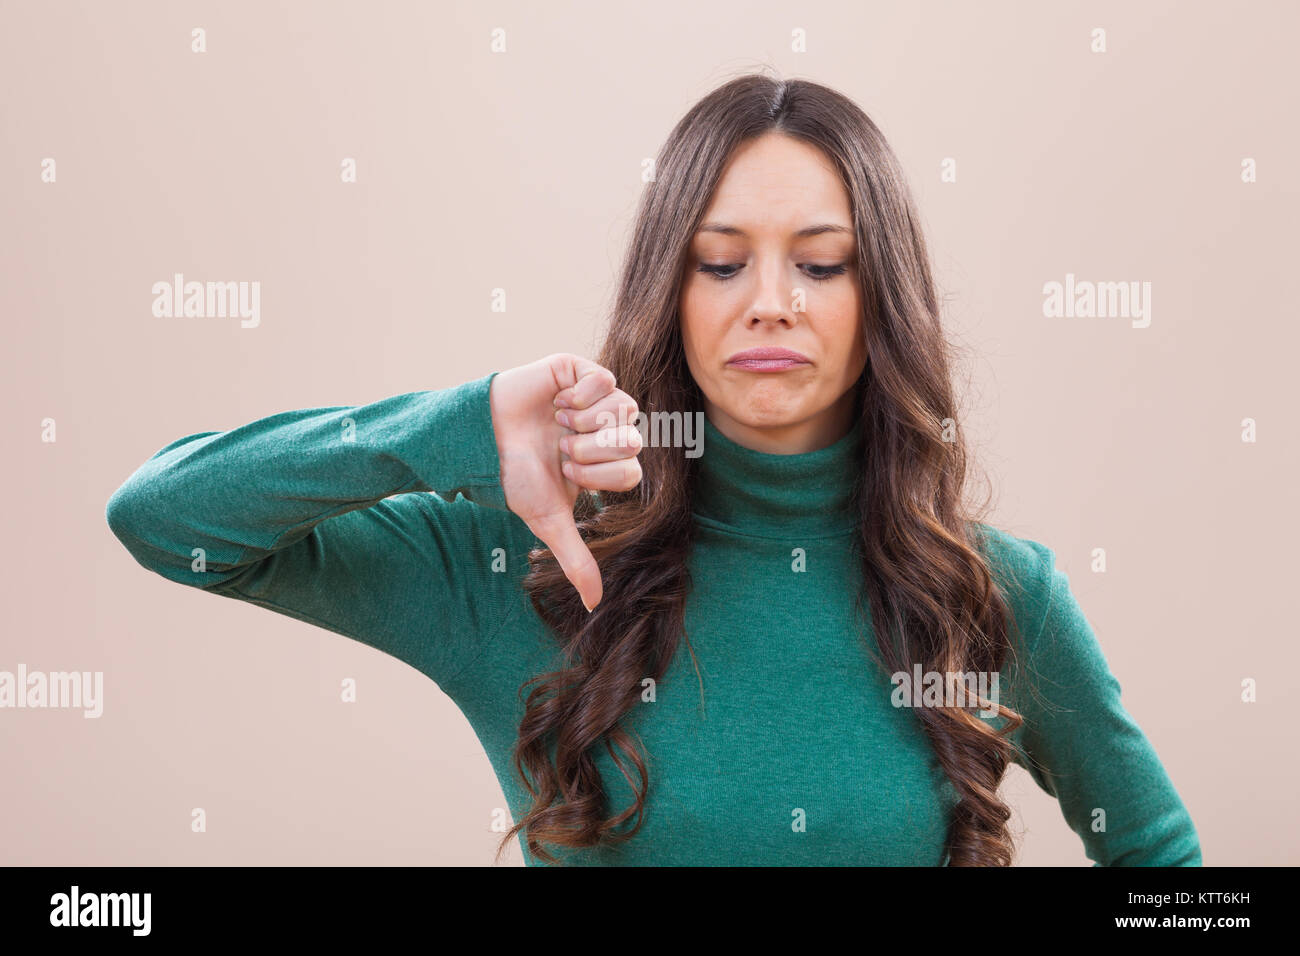 Portrait of displeased women who is showing thumb down - Stock Image